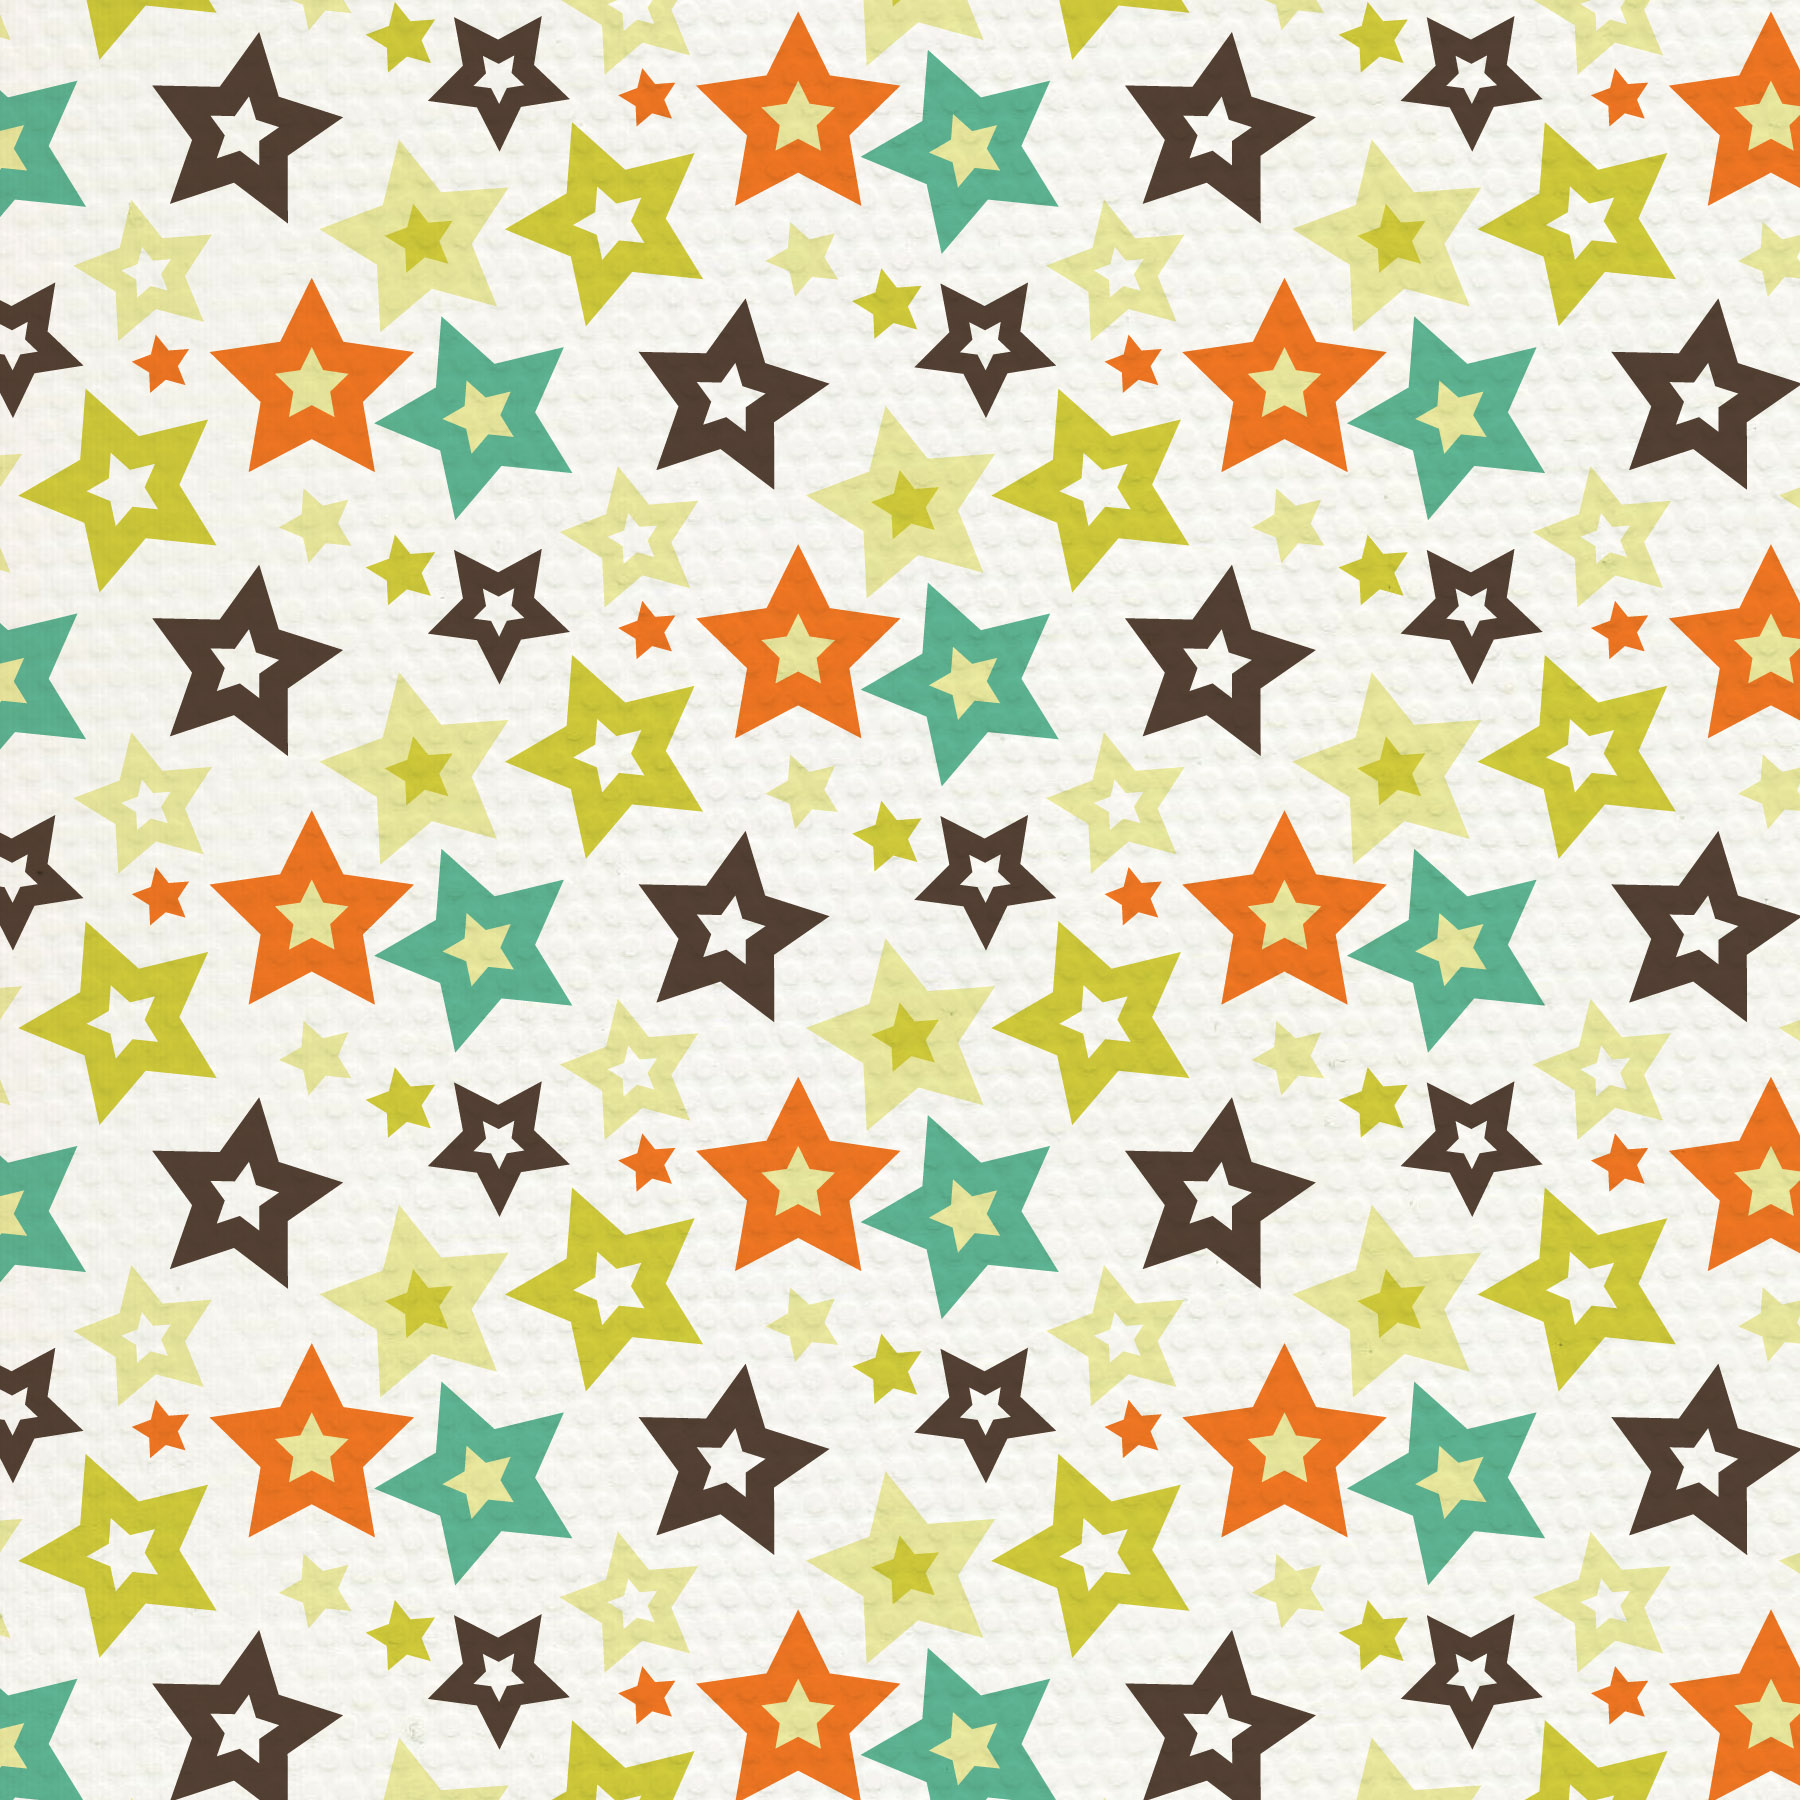 Free Scrapbook Paper Patterns